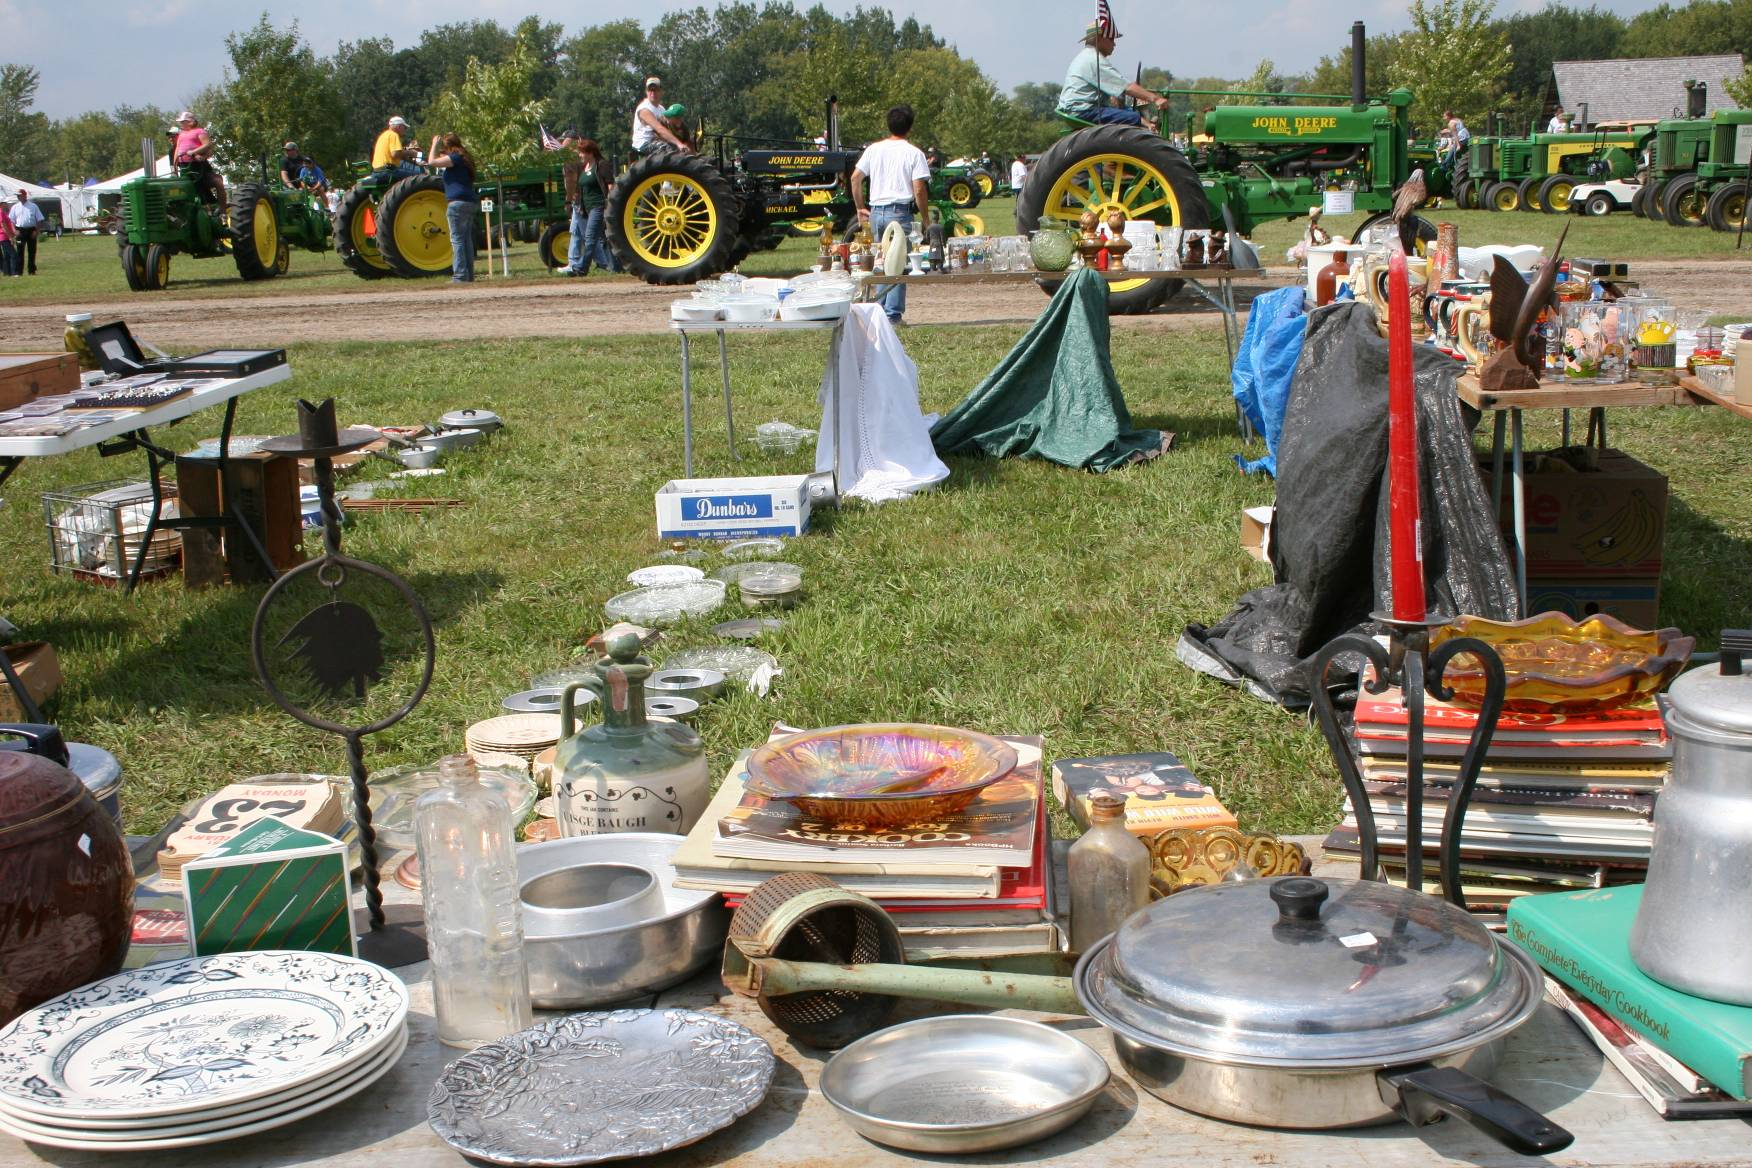 Merchandise displayed at the Rice County Steam and Gas Engines Show flea market.